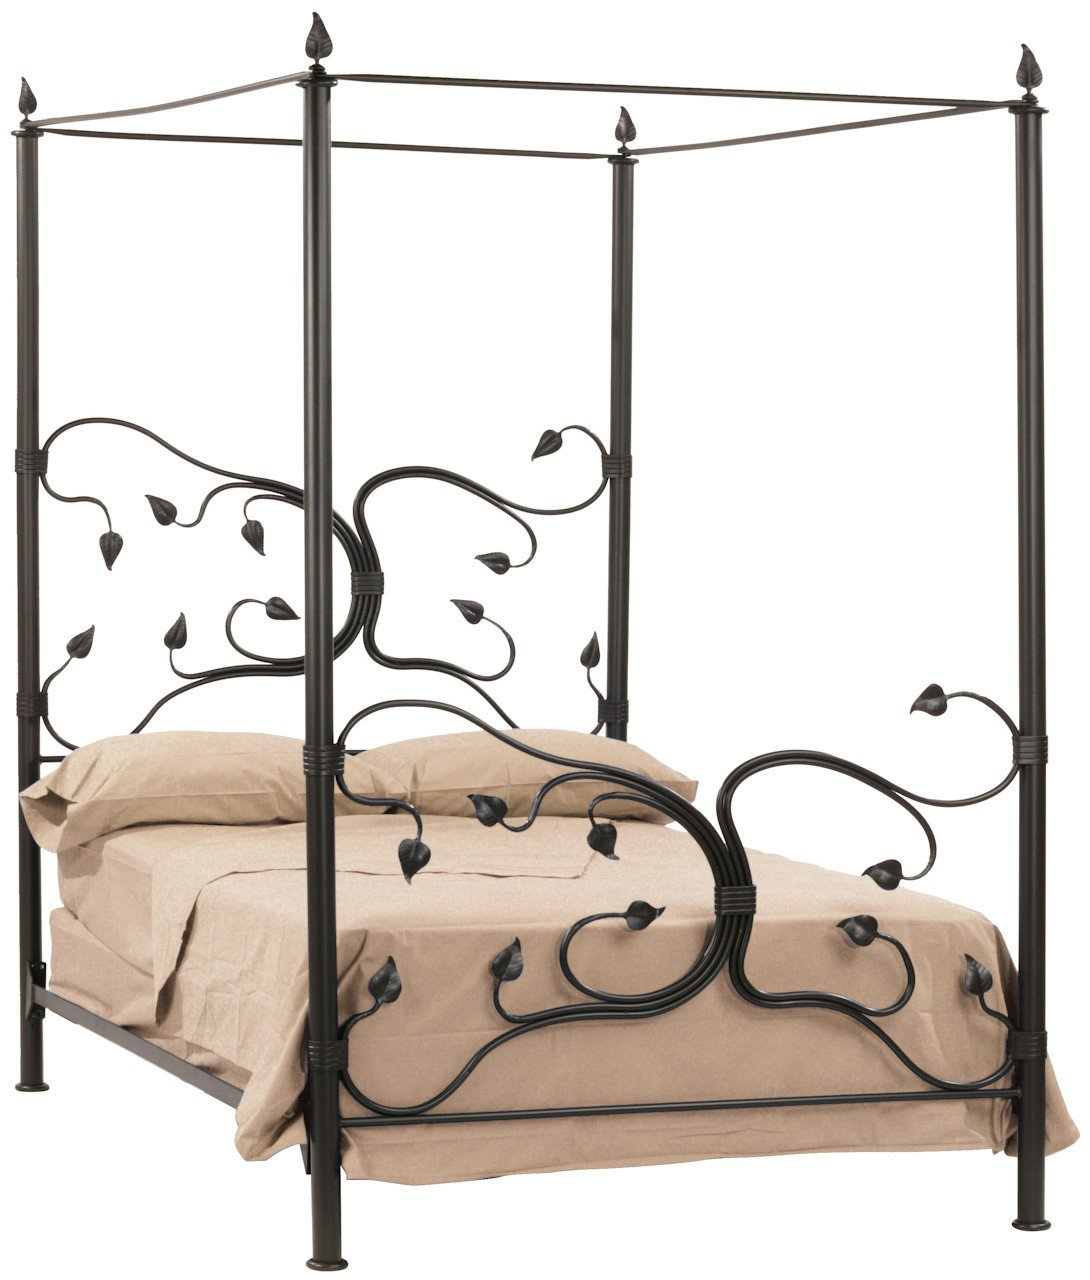 Isle Iron Canopy King Bed 1973 Product Photo